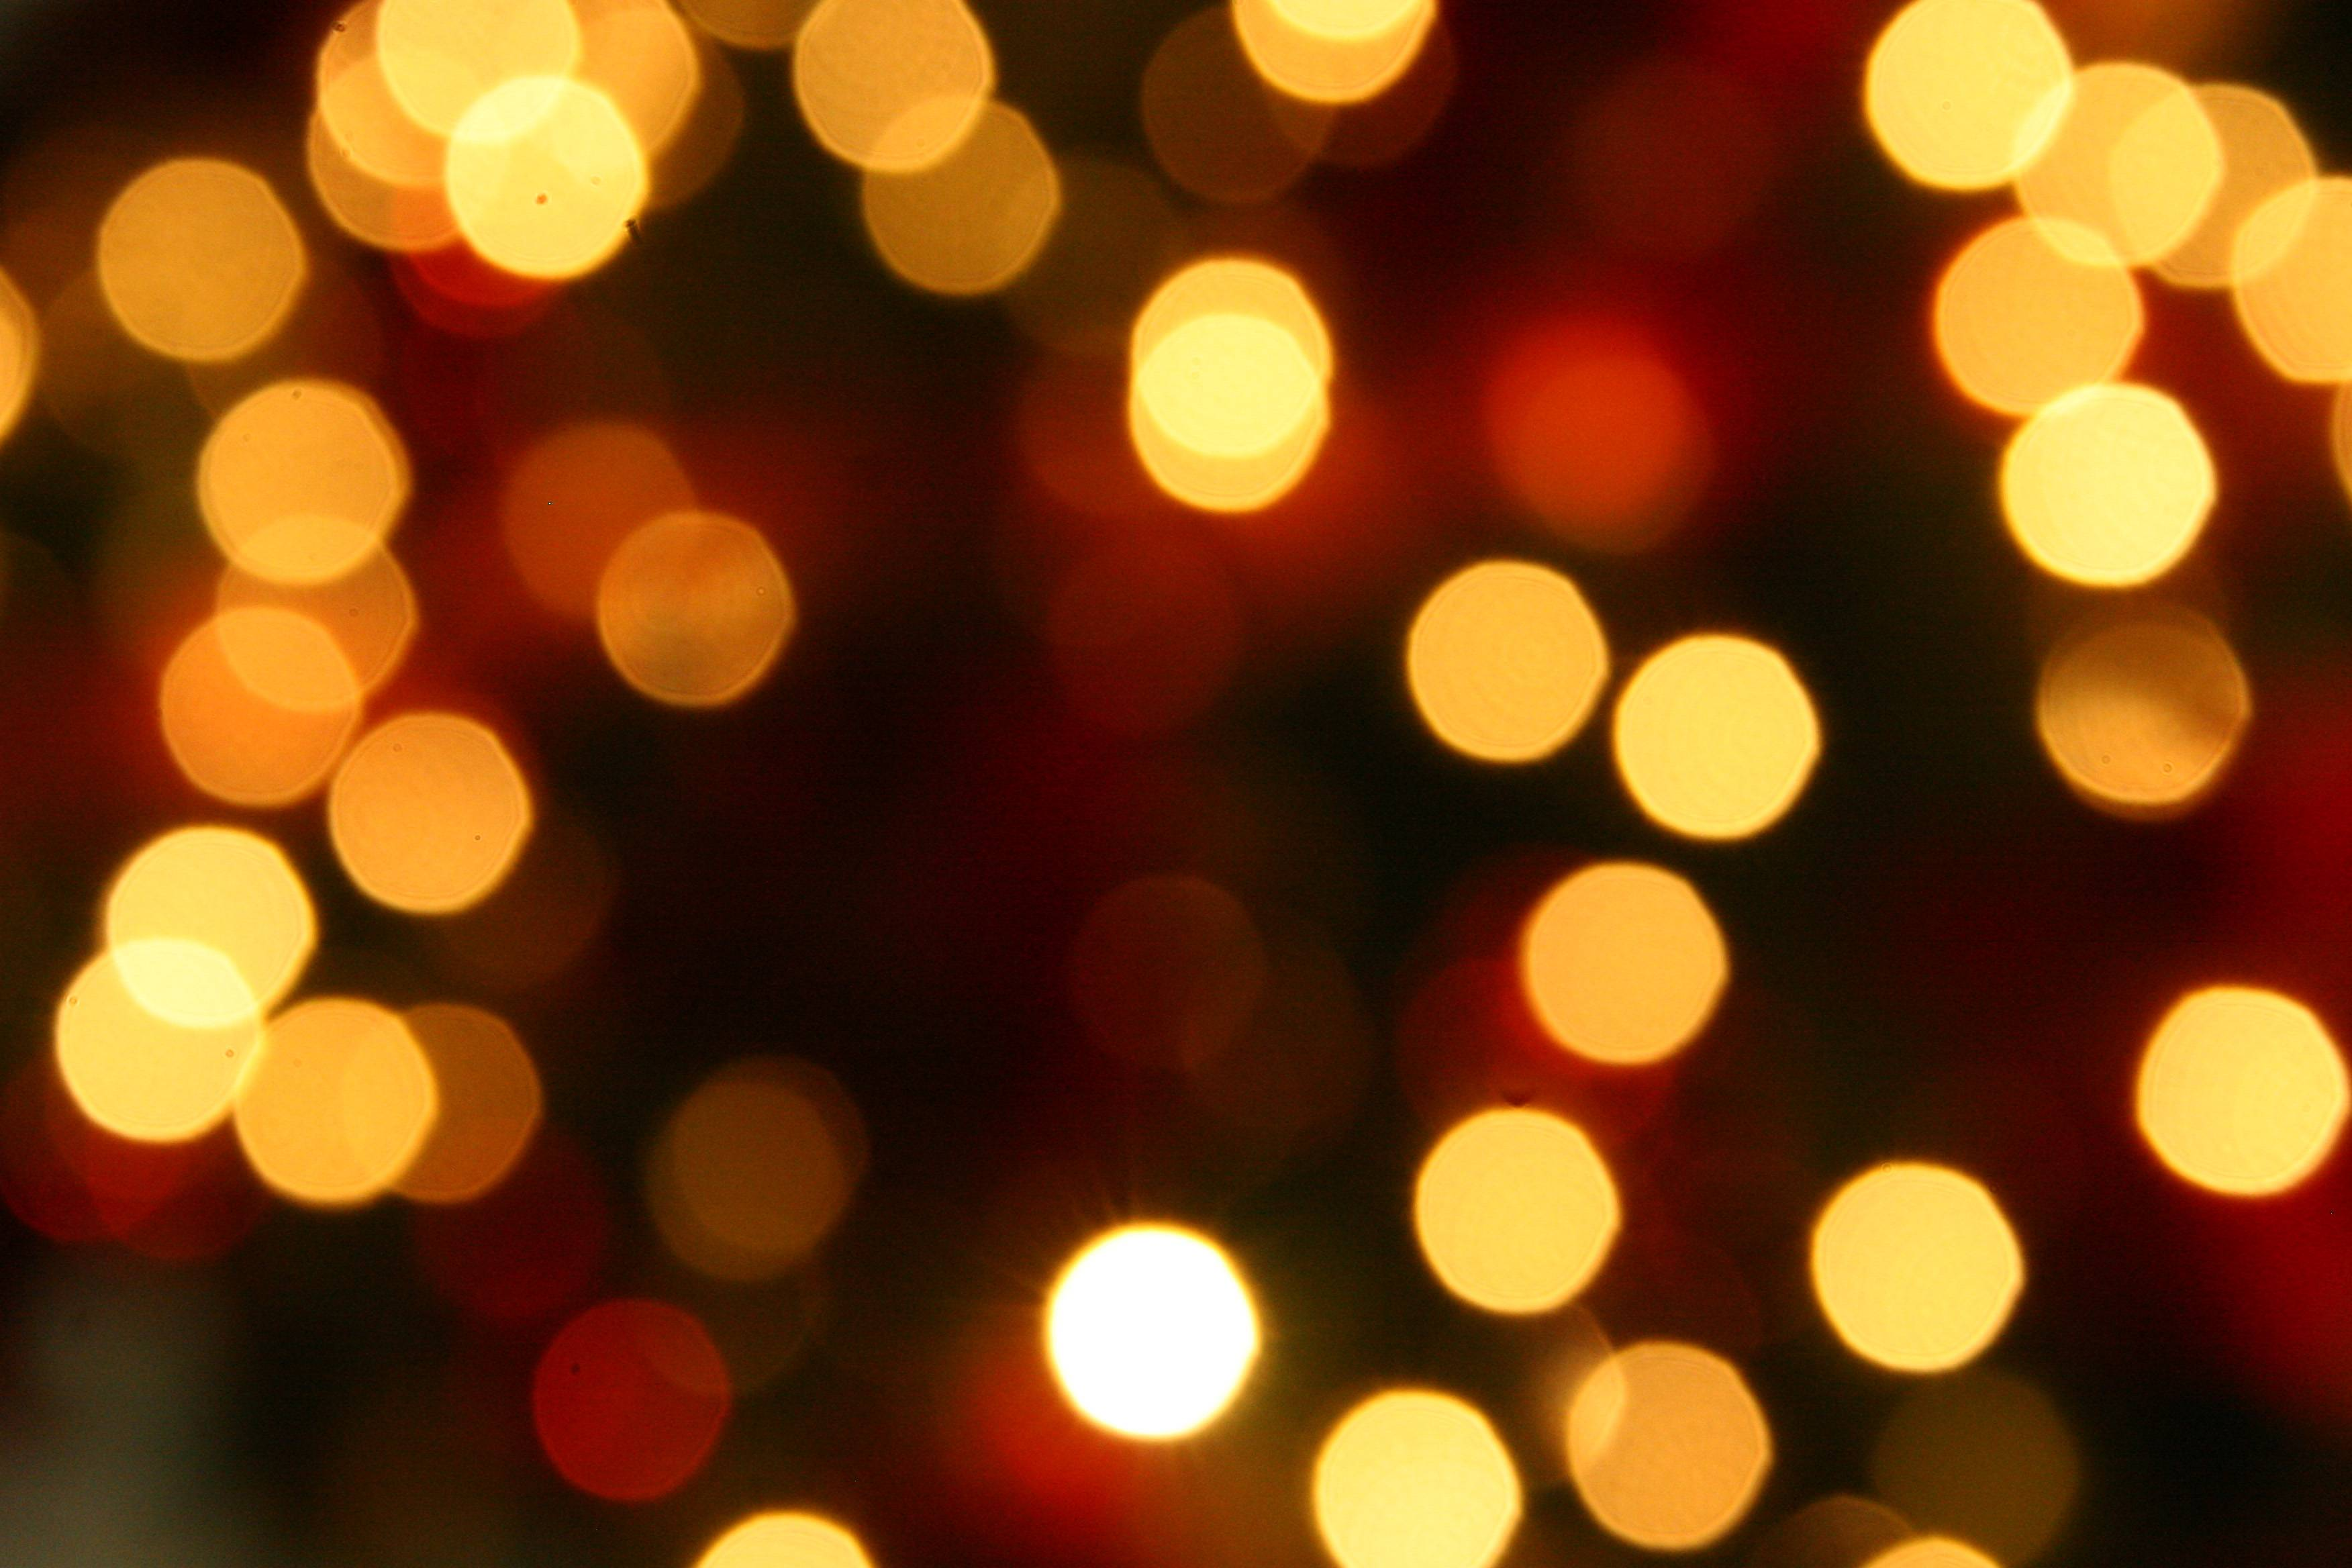 Romantic Christmas Lights Background